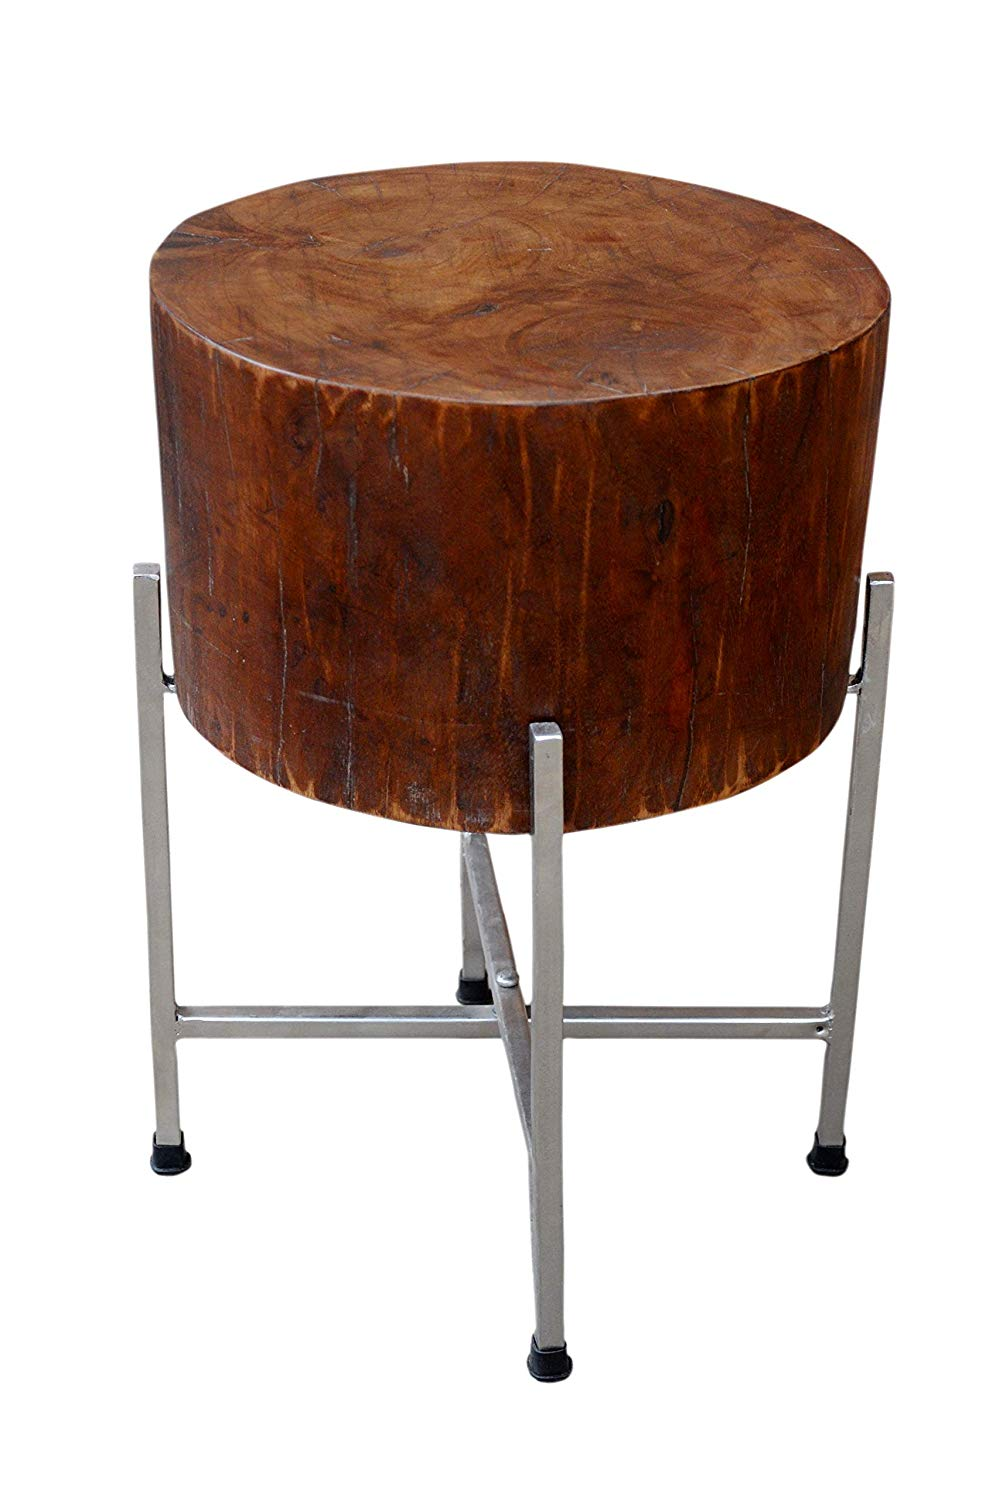 foreign affairs home decor solid mango wood accent table avani drum stan with cross leg silver stand polished inch block great oval farm marble top dining set half circle round